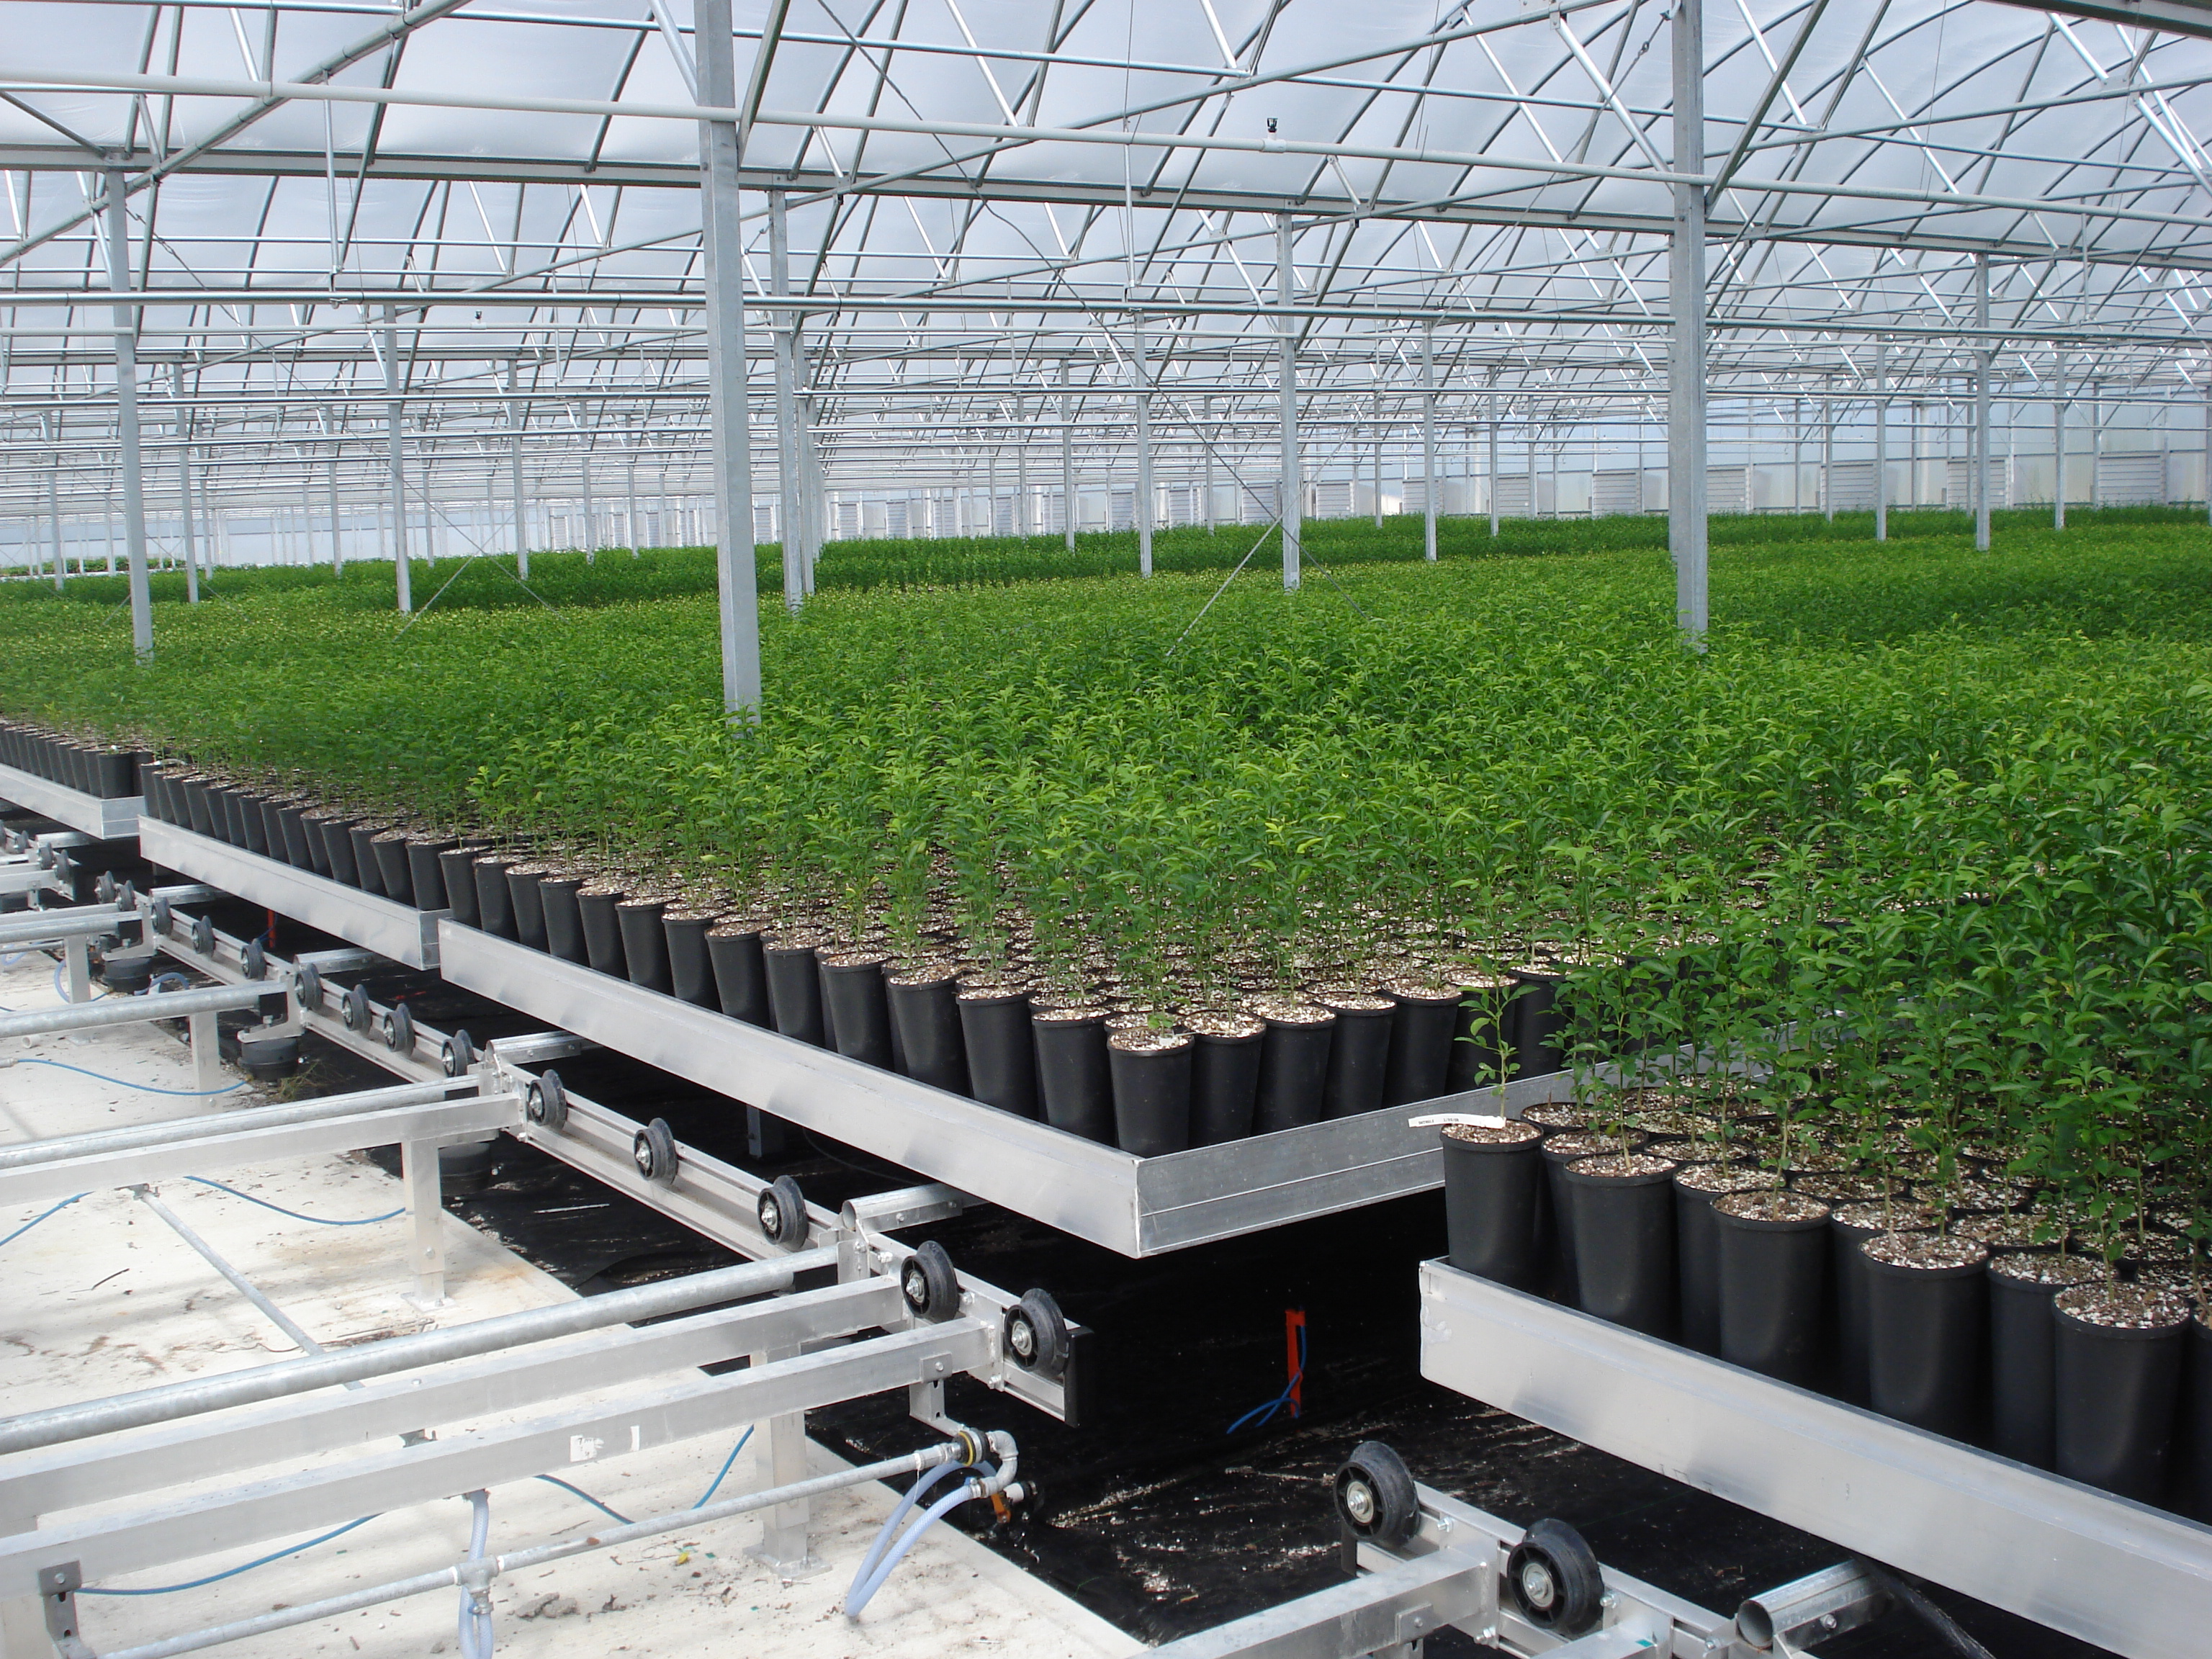 Moving Tables - Greenhouse Expansion Projects - TAVA Systems